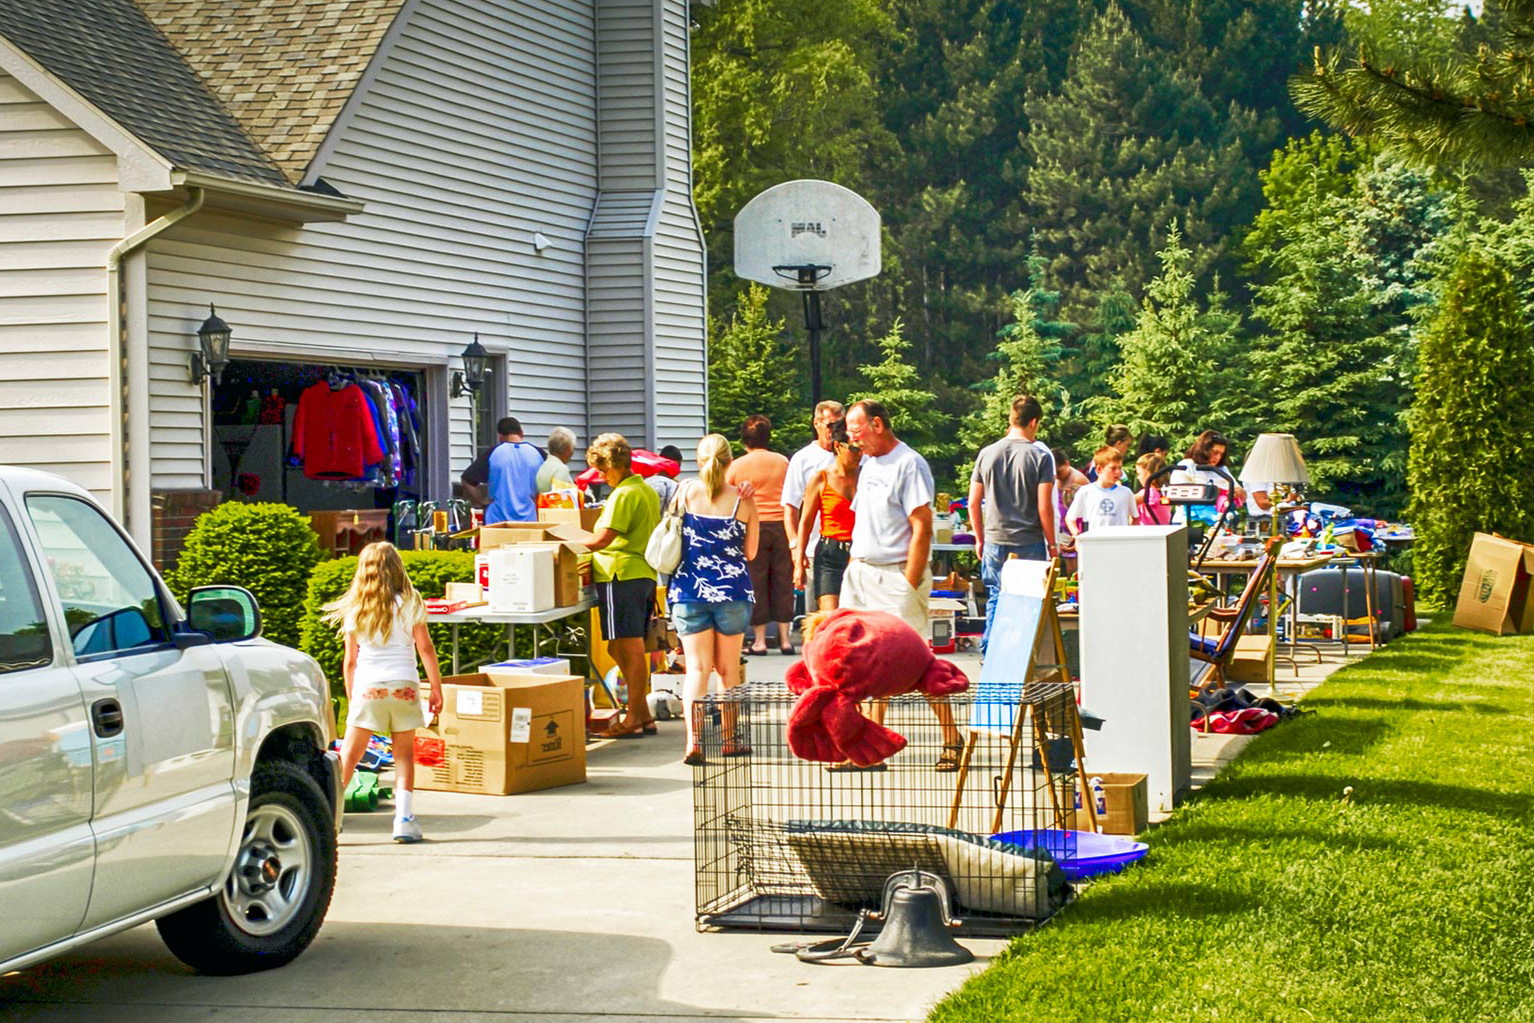 Christmas Shopping at Yard Sale: A Guide to Buy Inexpensive Christmas Gifts